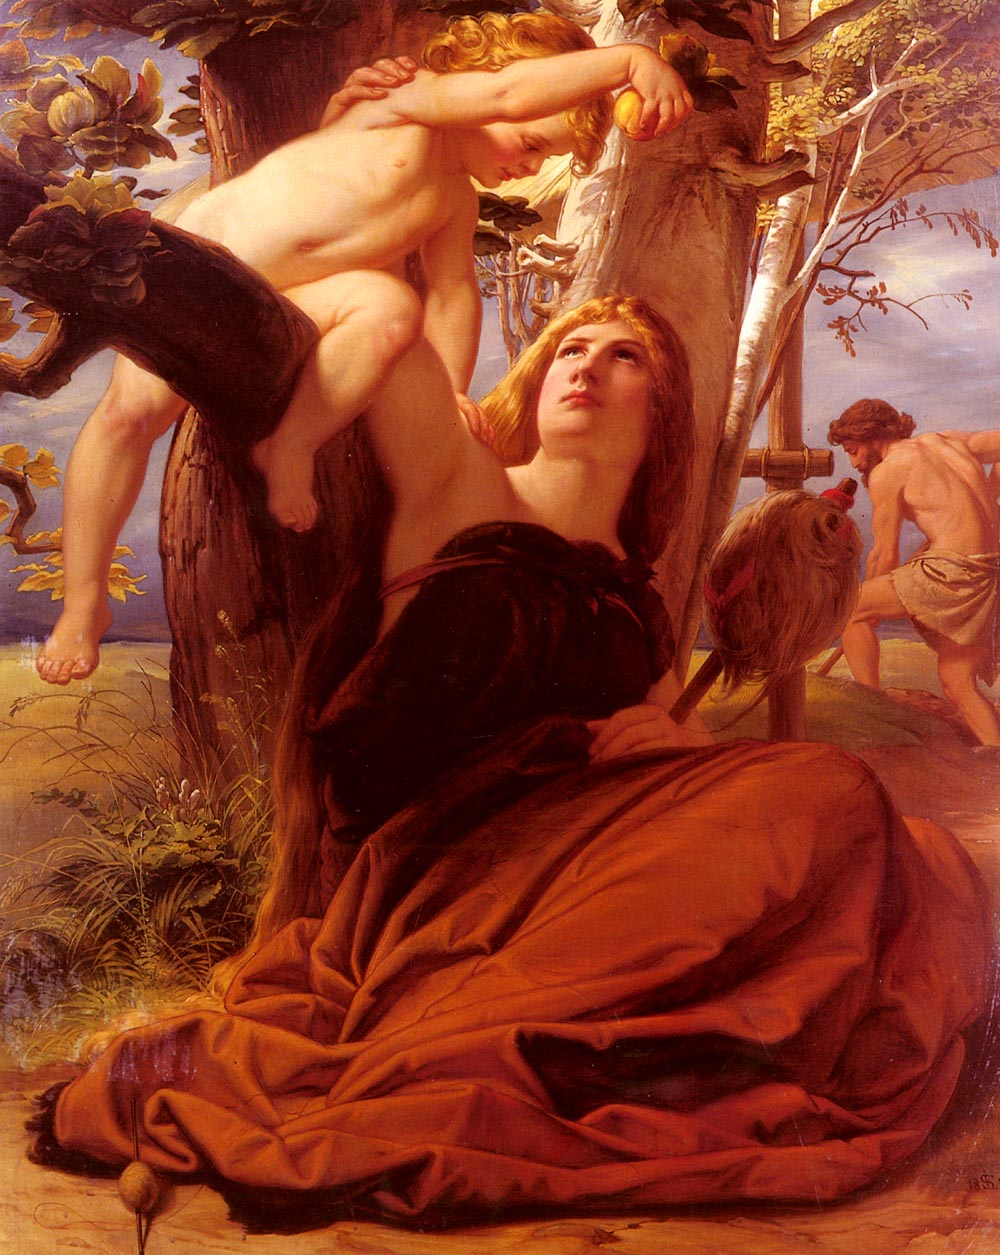 Adam and Eve after the Fall by Edward von Steinle